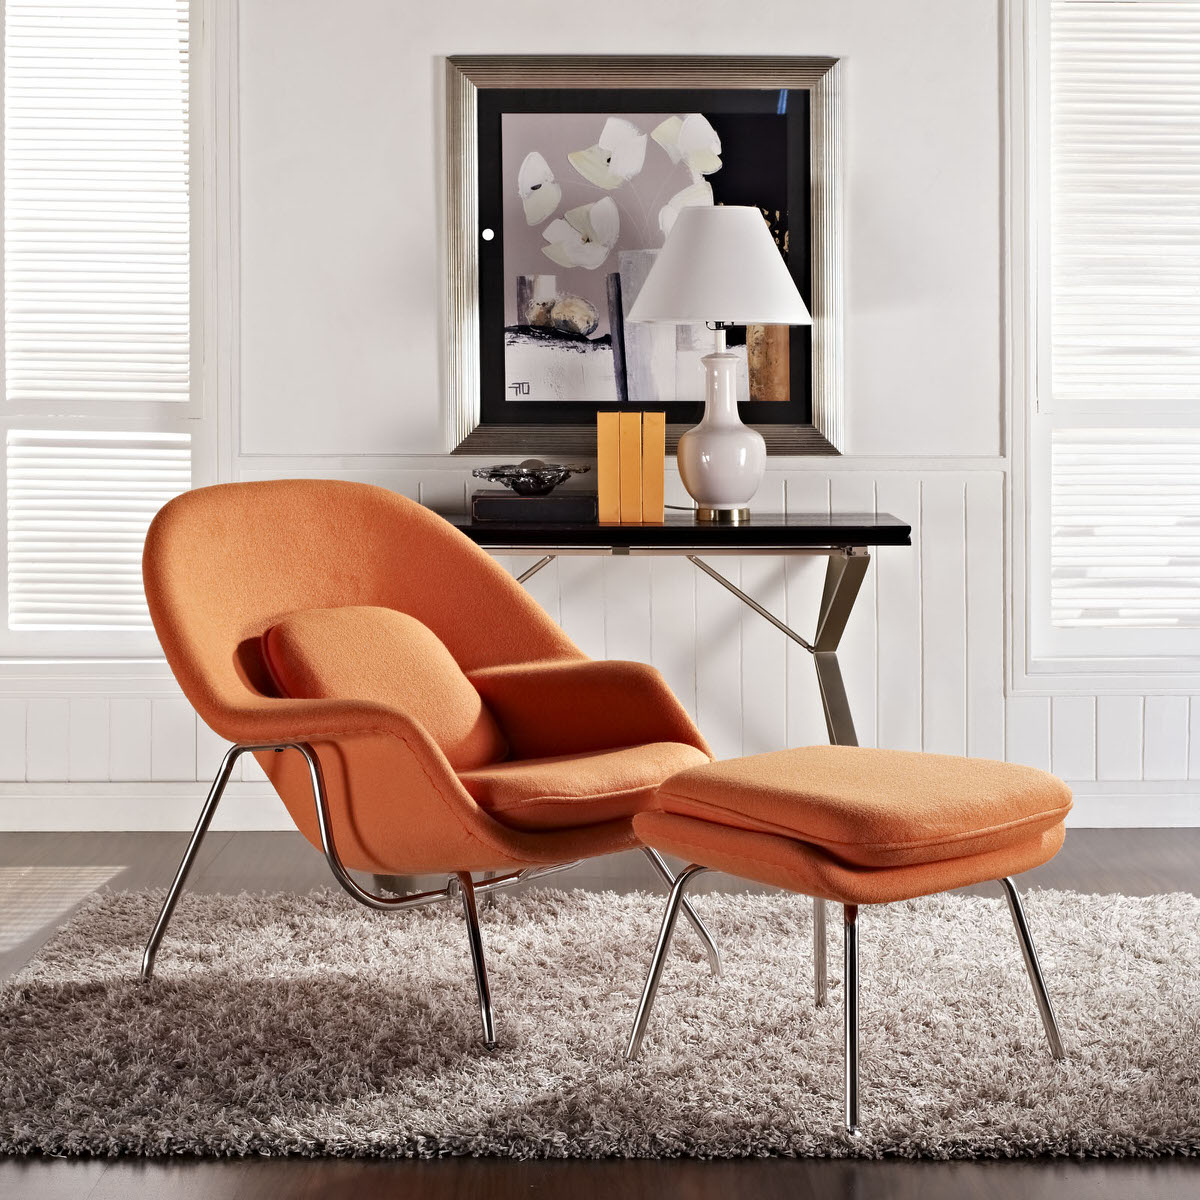 W Upholstered Fabric Lounge Chair With Ottoman Orange By Modway